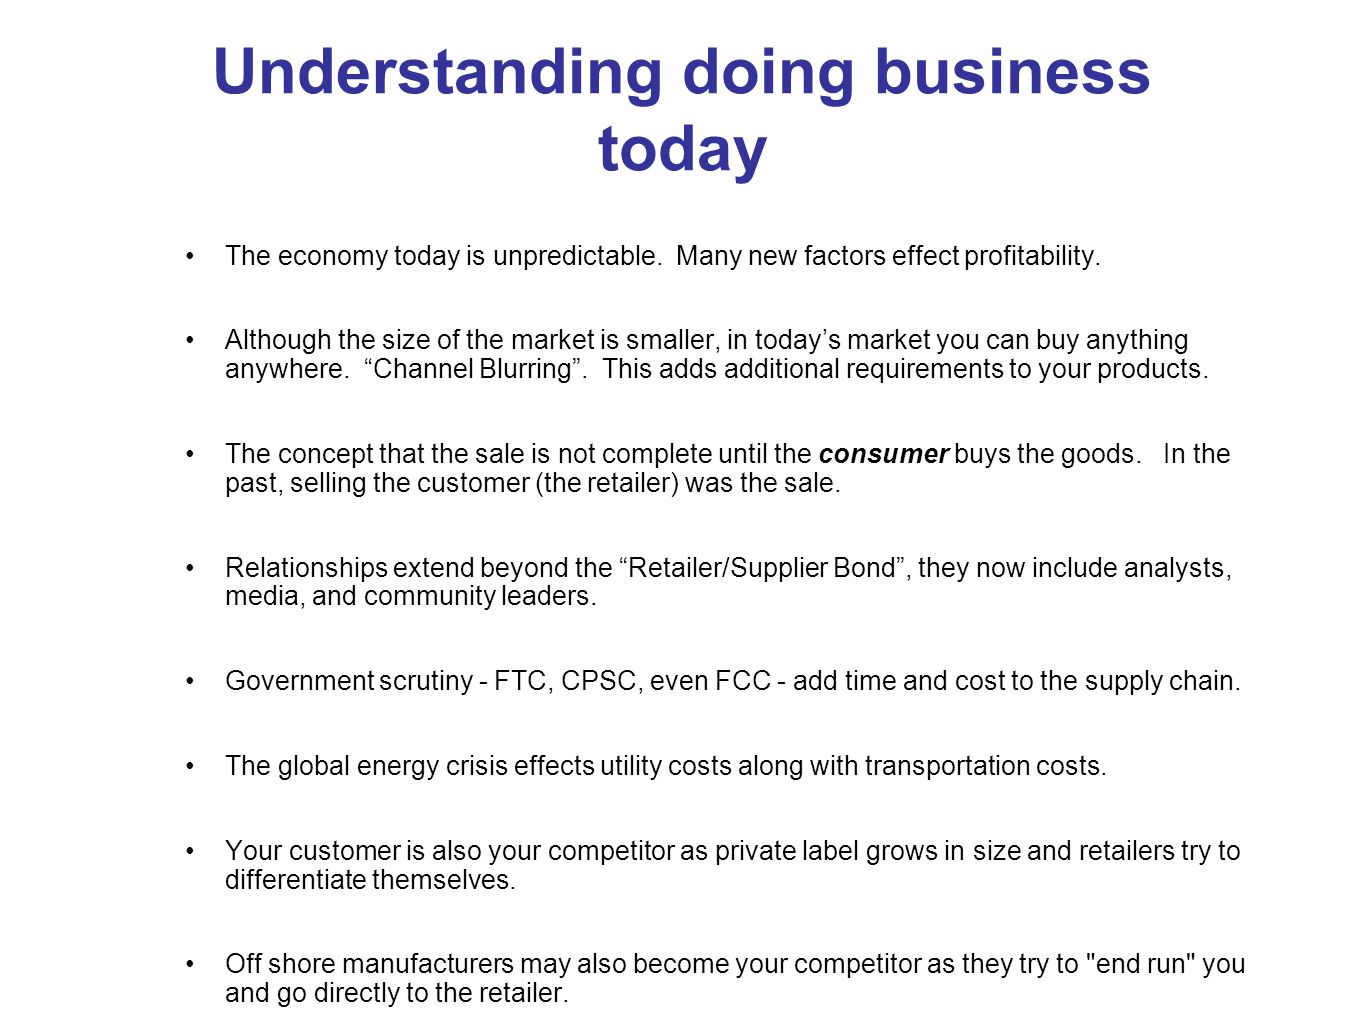 Understanding doing business today The economy today is unpredictable. Many new factors effect profitability. Although the size of the market is small